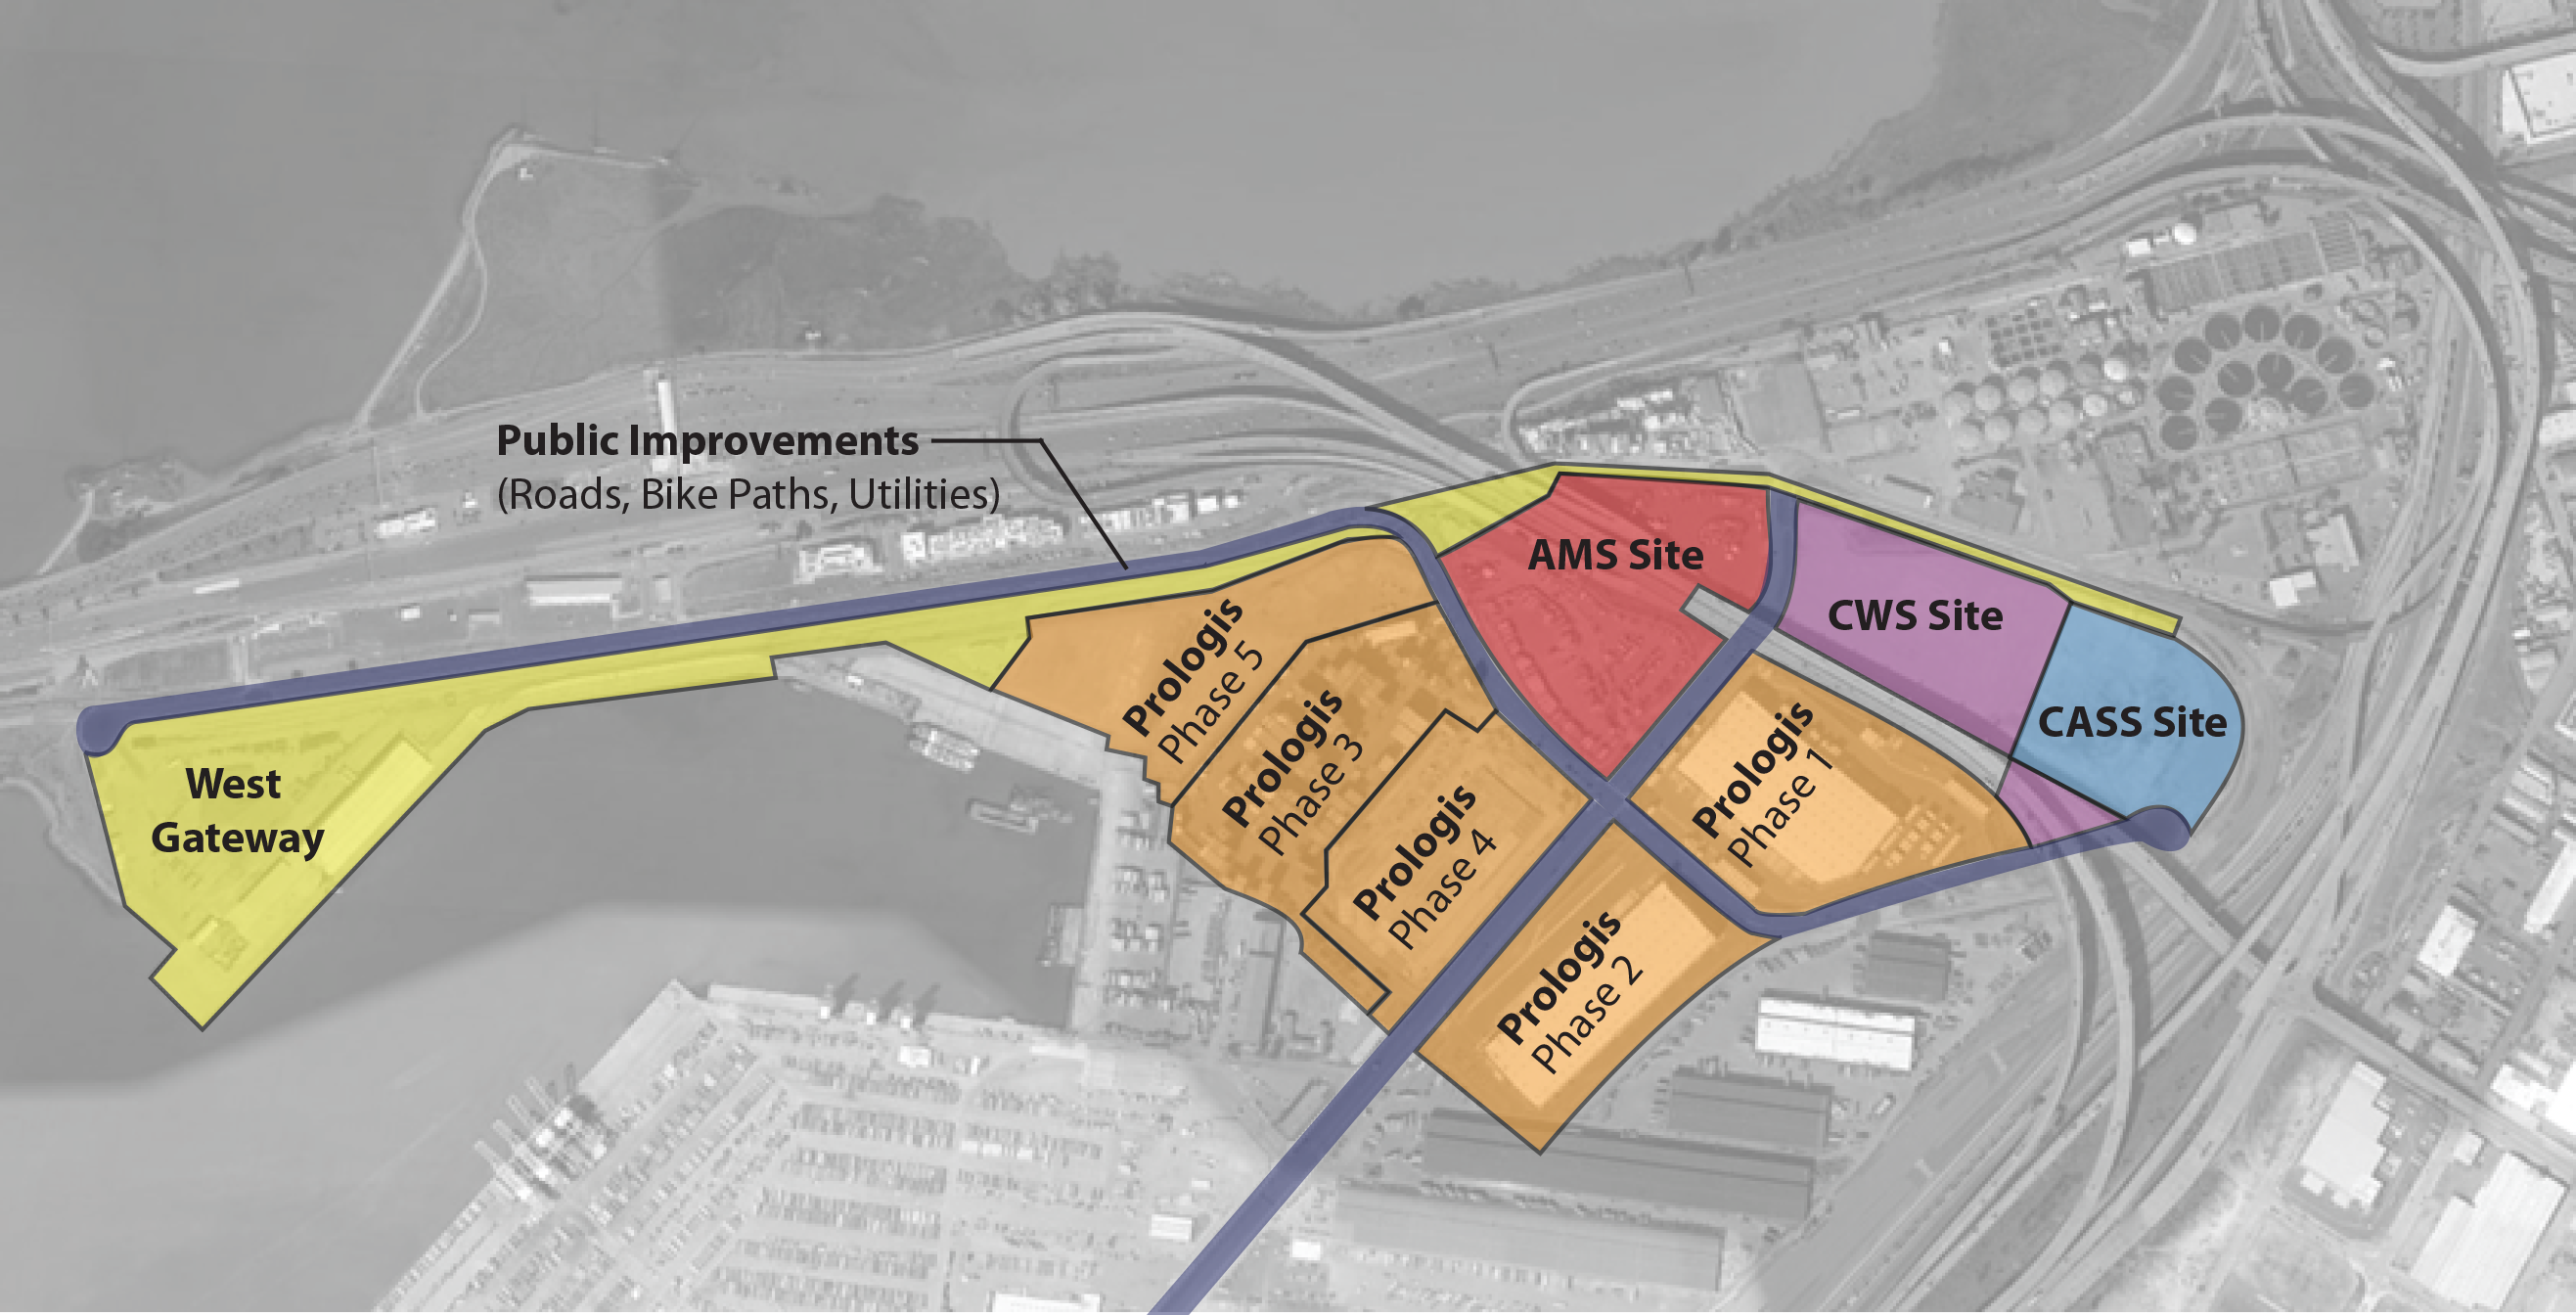 Gateway Industrial District (former Oakland Army Base) Site Plan 2021